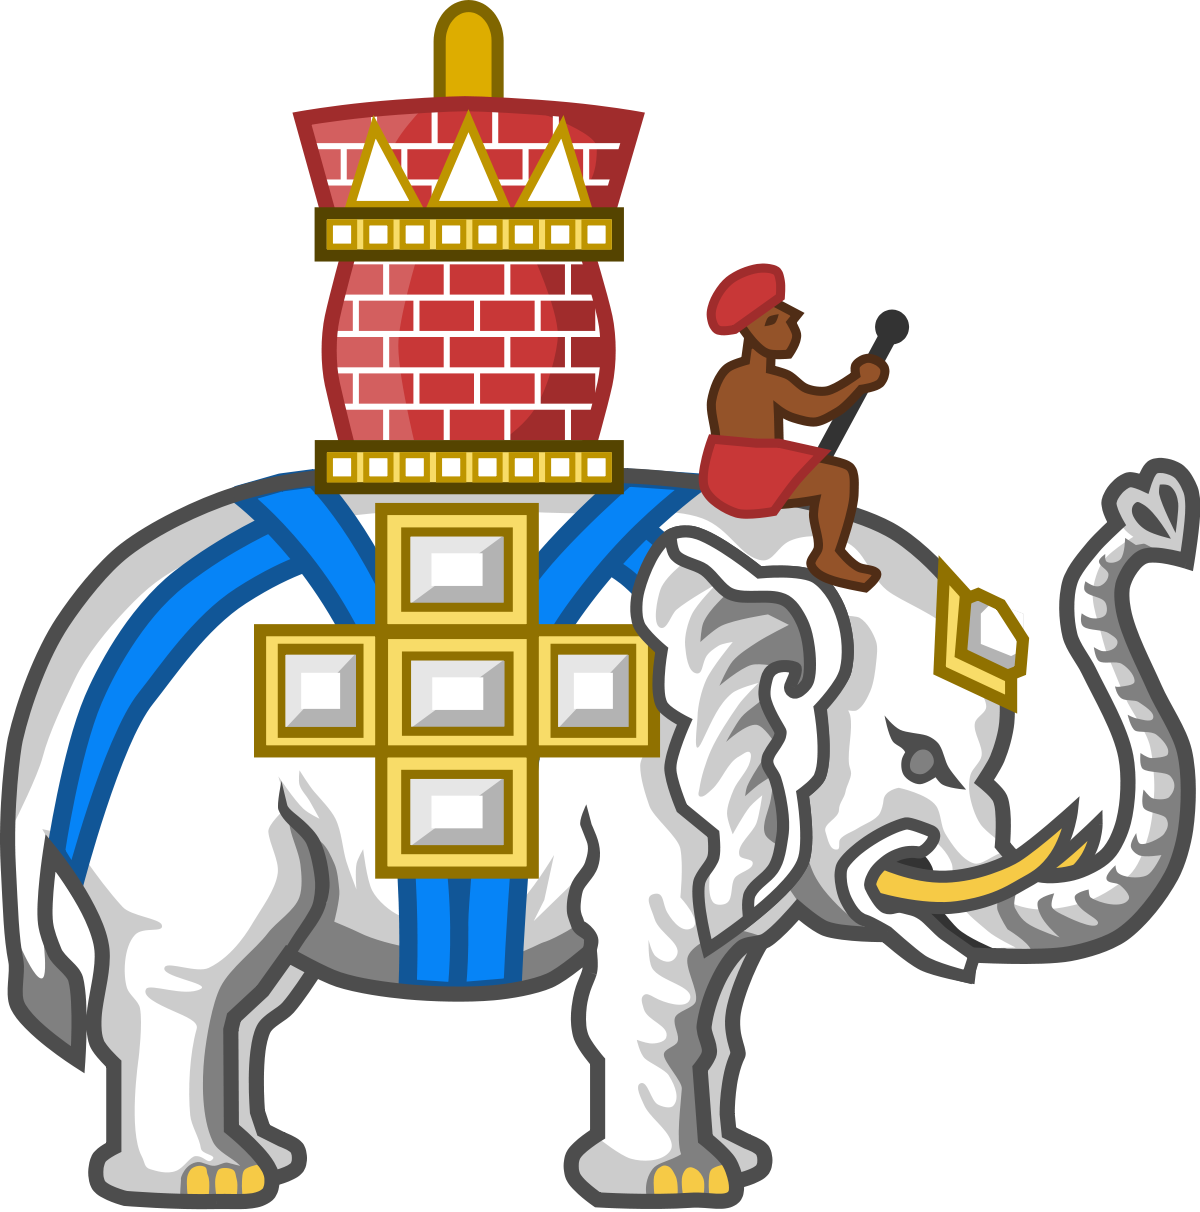 Knights clipart history british. Order of the elephant